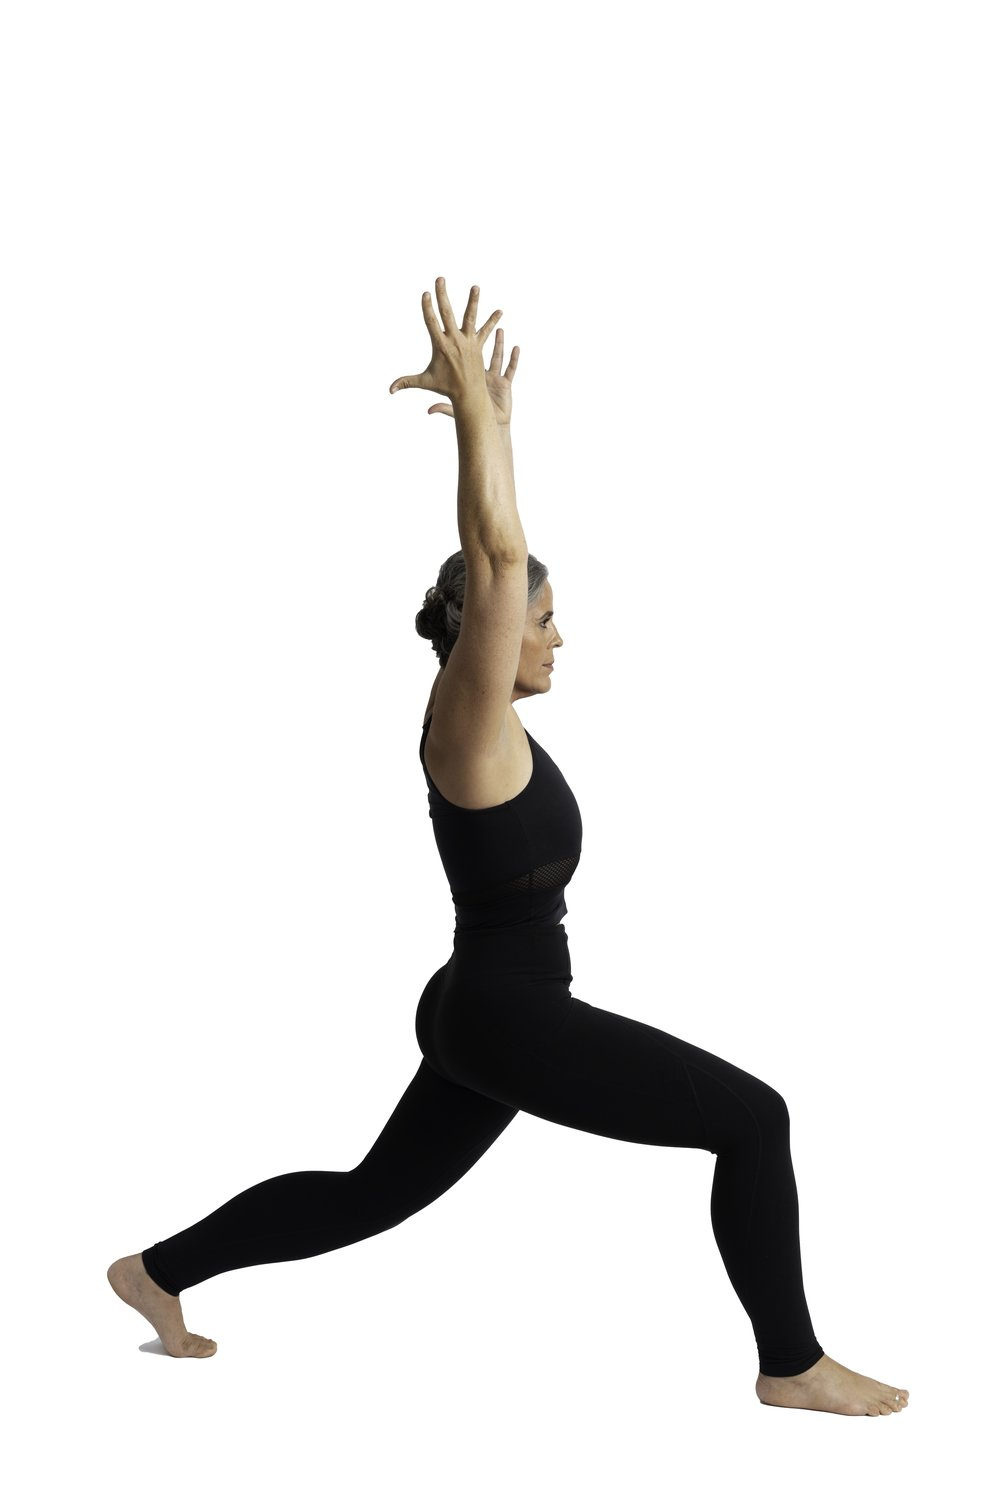 Crescent Lunge with lifted back heel, back knee bent and posteriorly tilted ,symmetrical pelvis